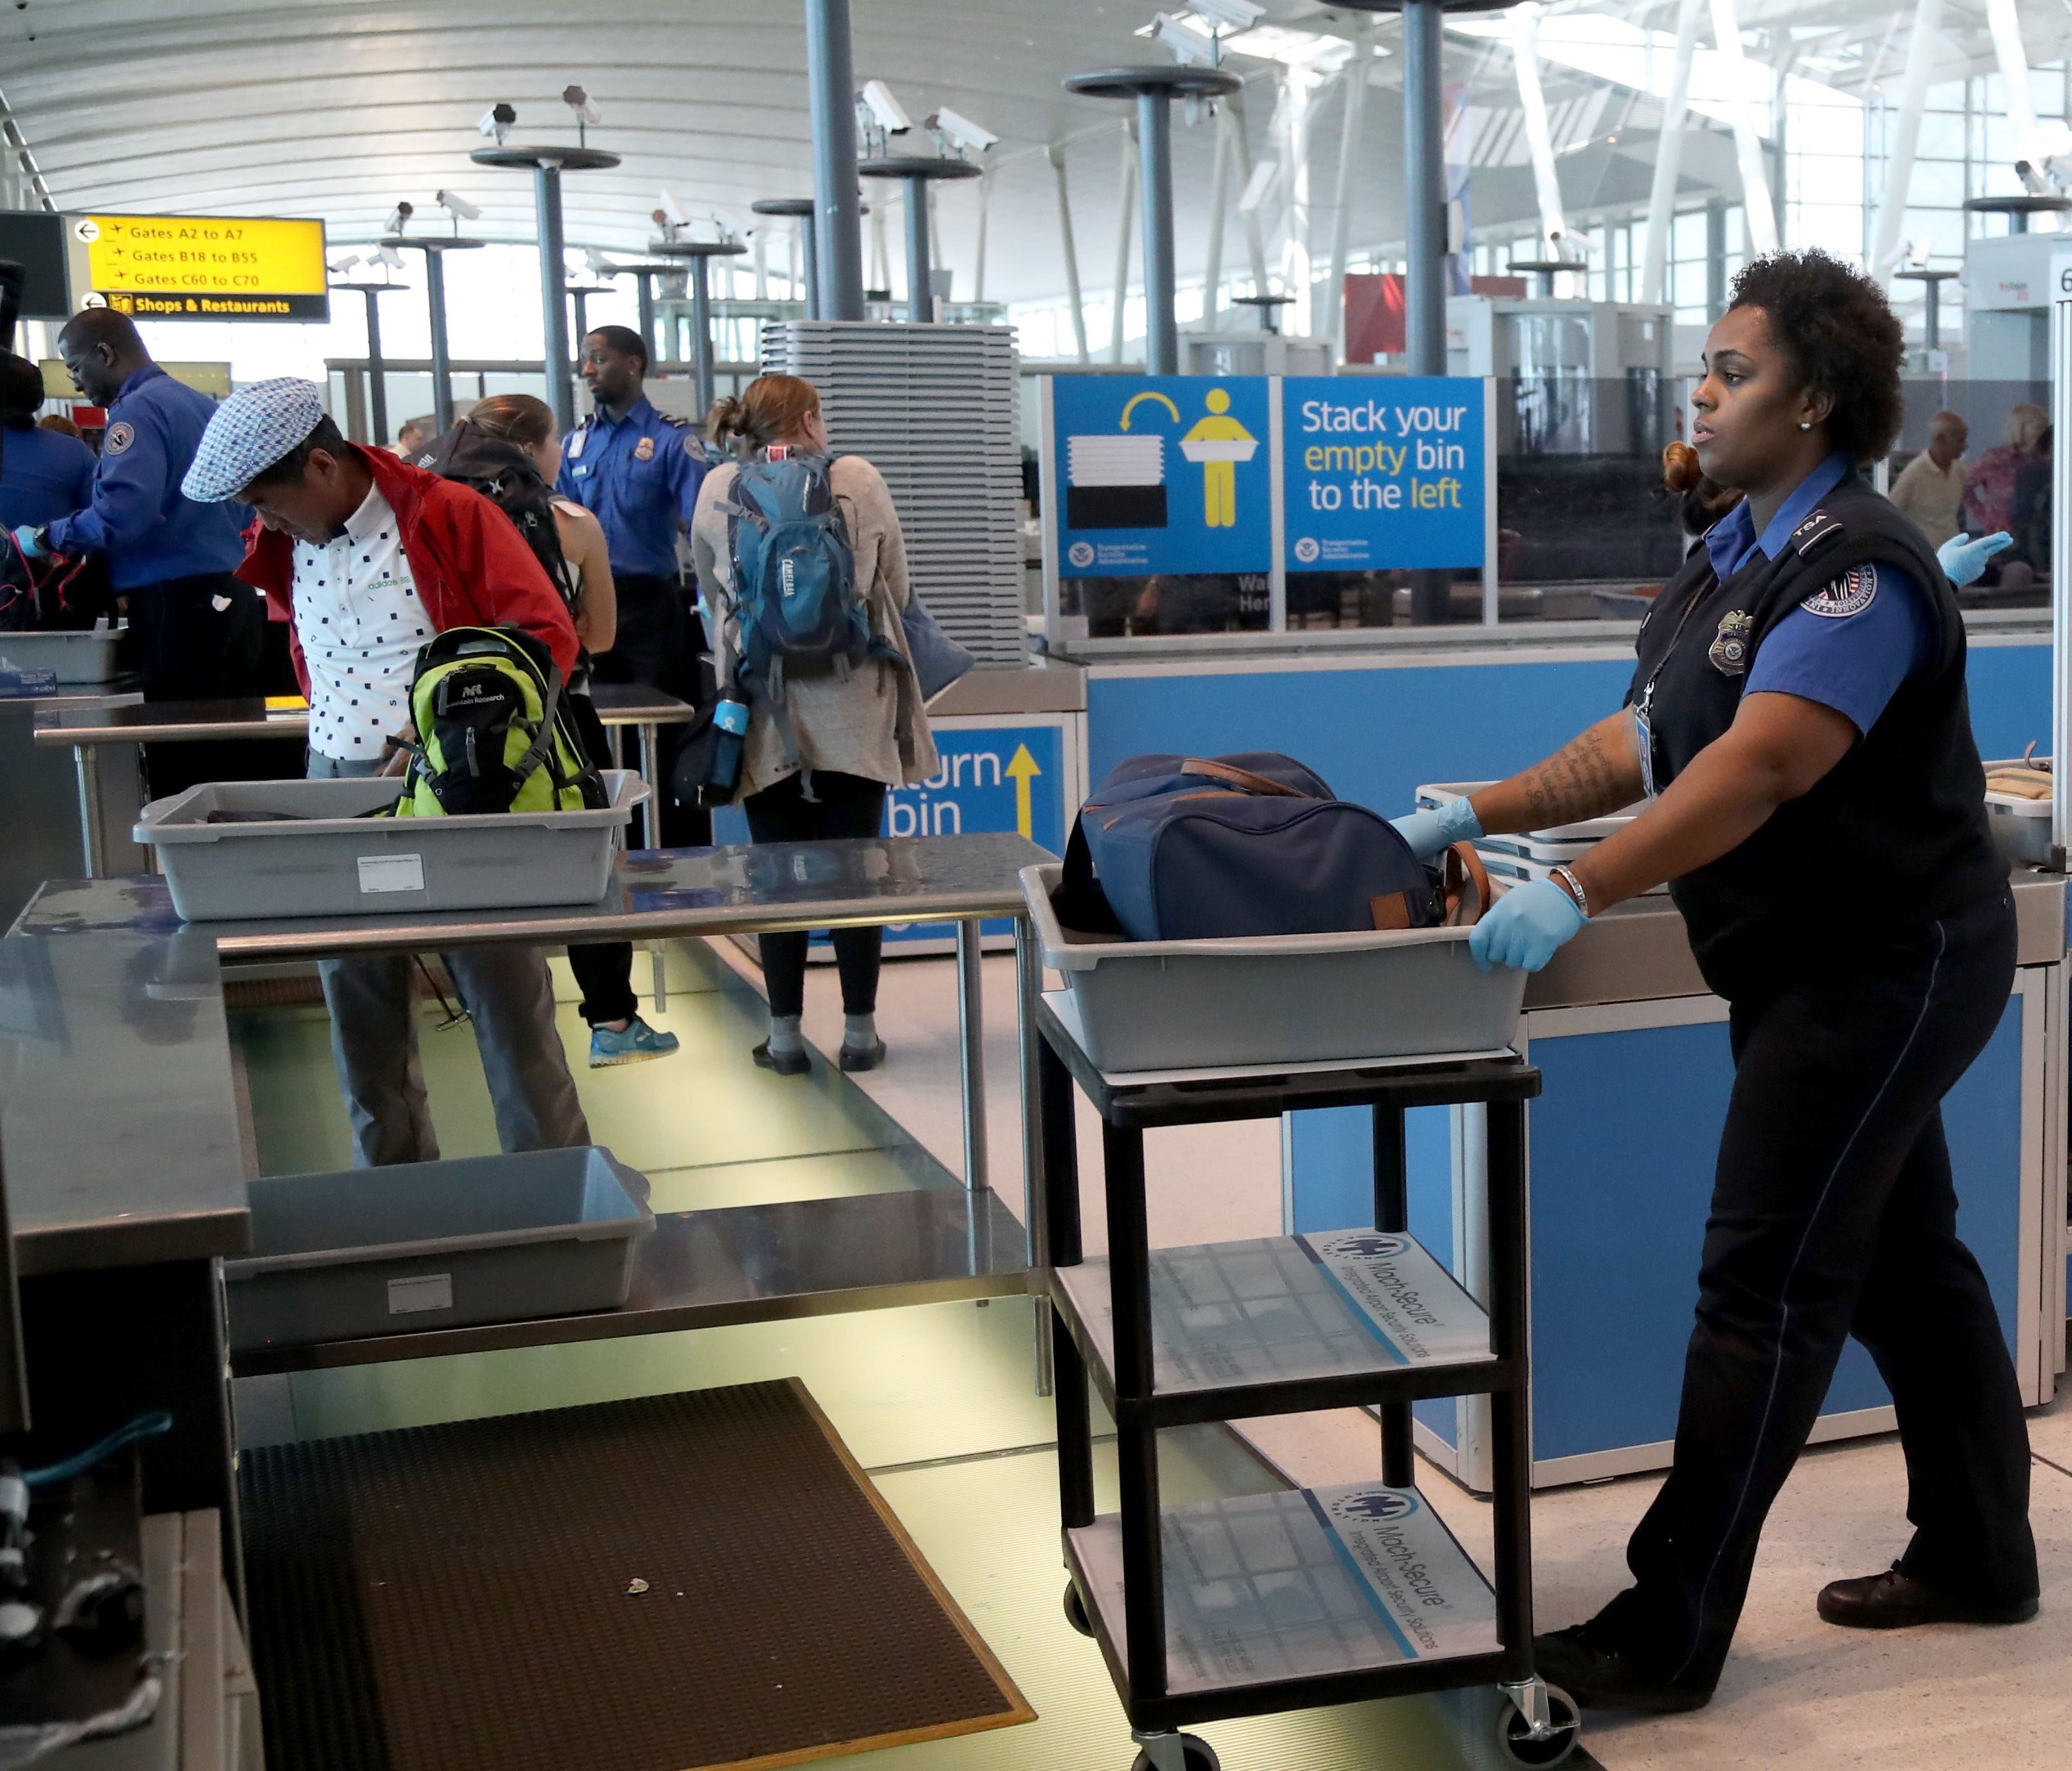 A Transportation Security Administration officer handles a bag for secondary screening at a new checkpoint with automated screening lanes at Terminal 4 at John F. Kennedy International Airport in Queens, New York on May 17, 2017.